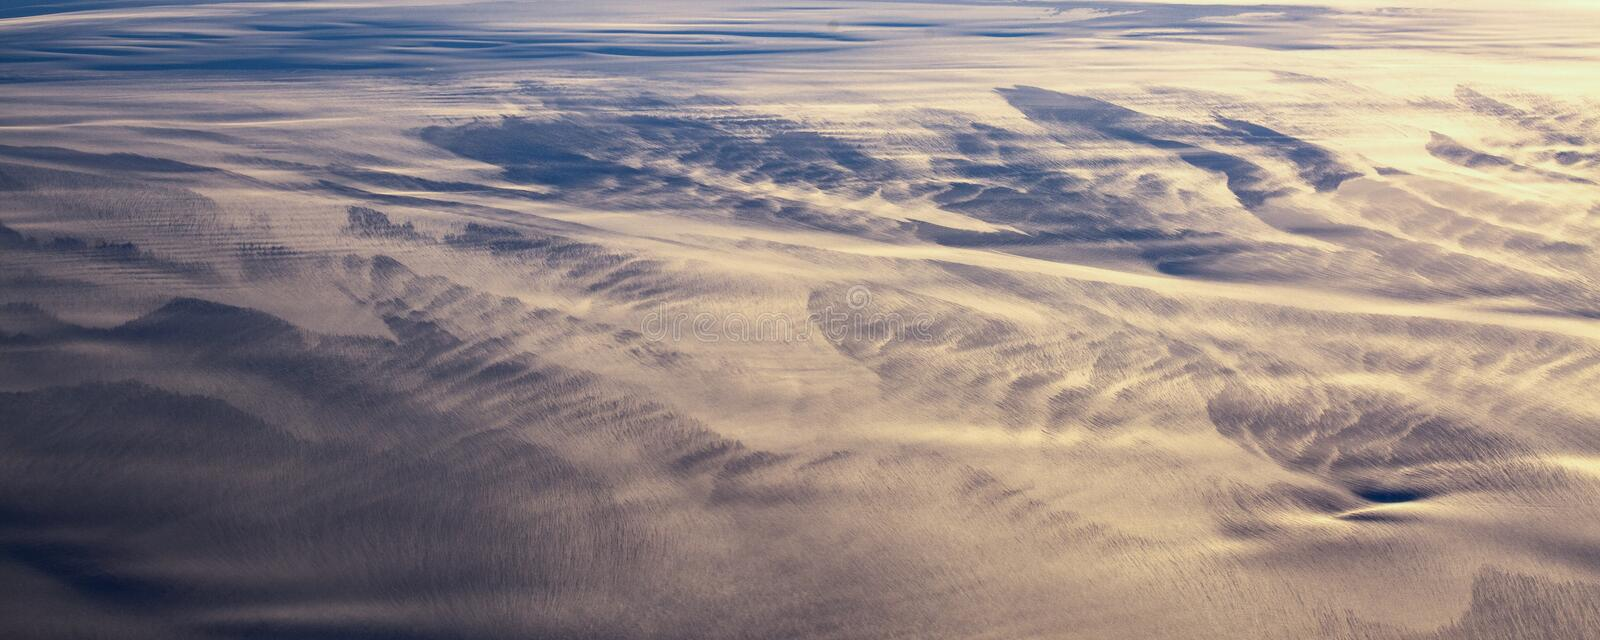 13Take an aerial view of the ice and sunrise over the bering strait.(1). The bering strait is located in the high latitudes, cold weather, many storms stock image